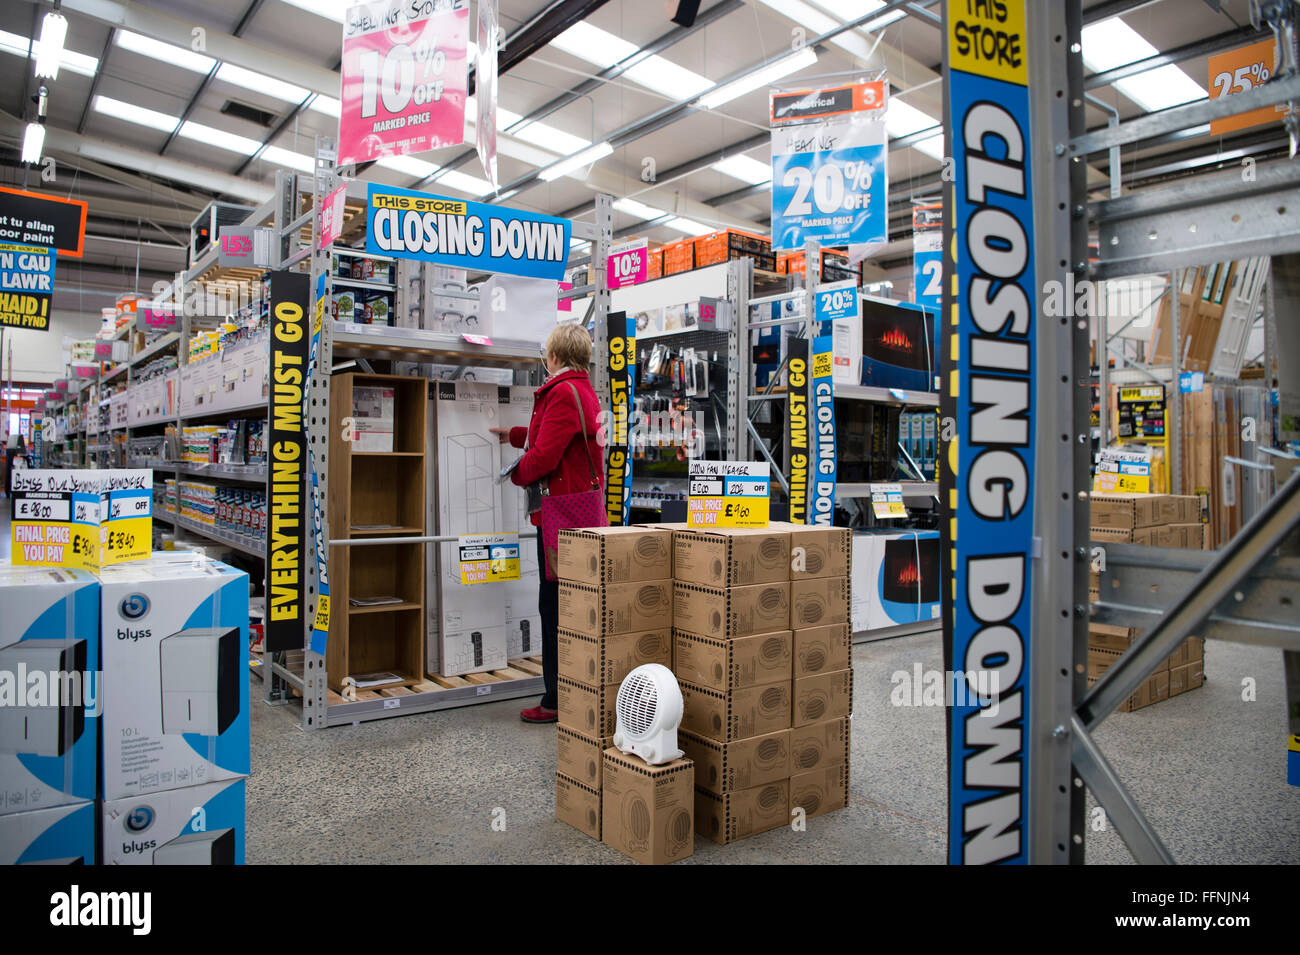 Inside a branch of bq b and q diy do it yourself shop store in inside a branch of bq b and q diy do it yourself shop store in the weks prior to its closing down uk solutioingenieria Image collections